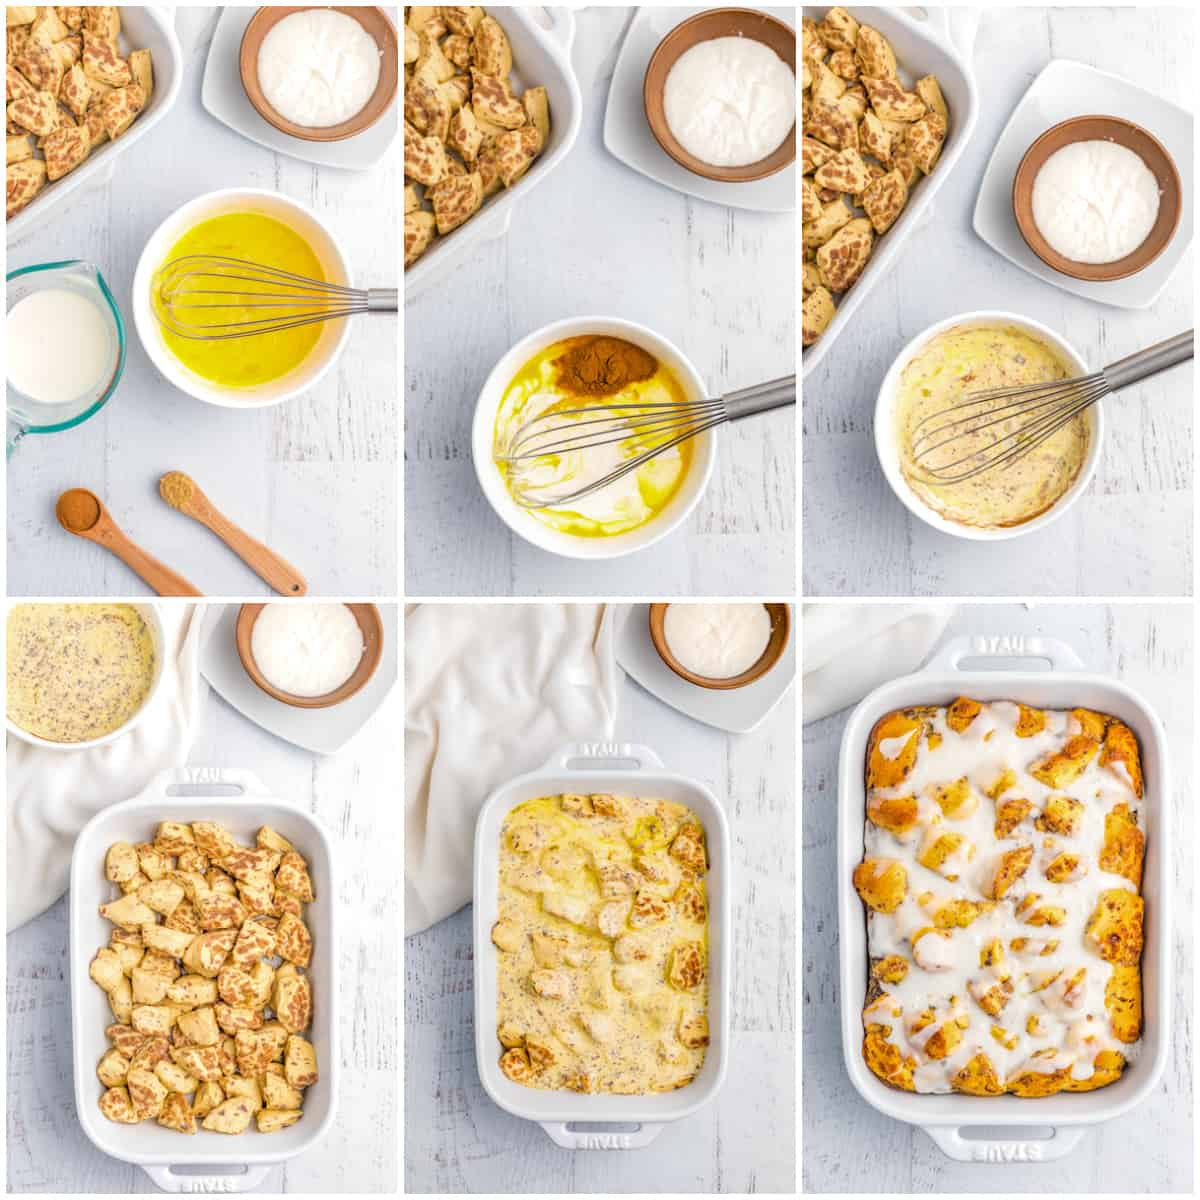 Step by step photos on how to make Cinnamon Roll Casserole